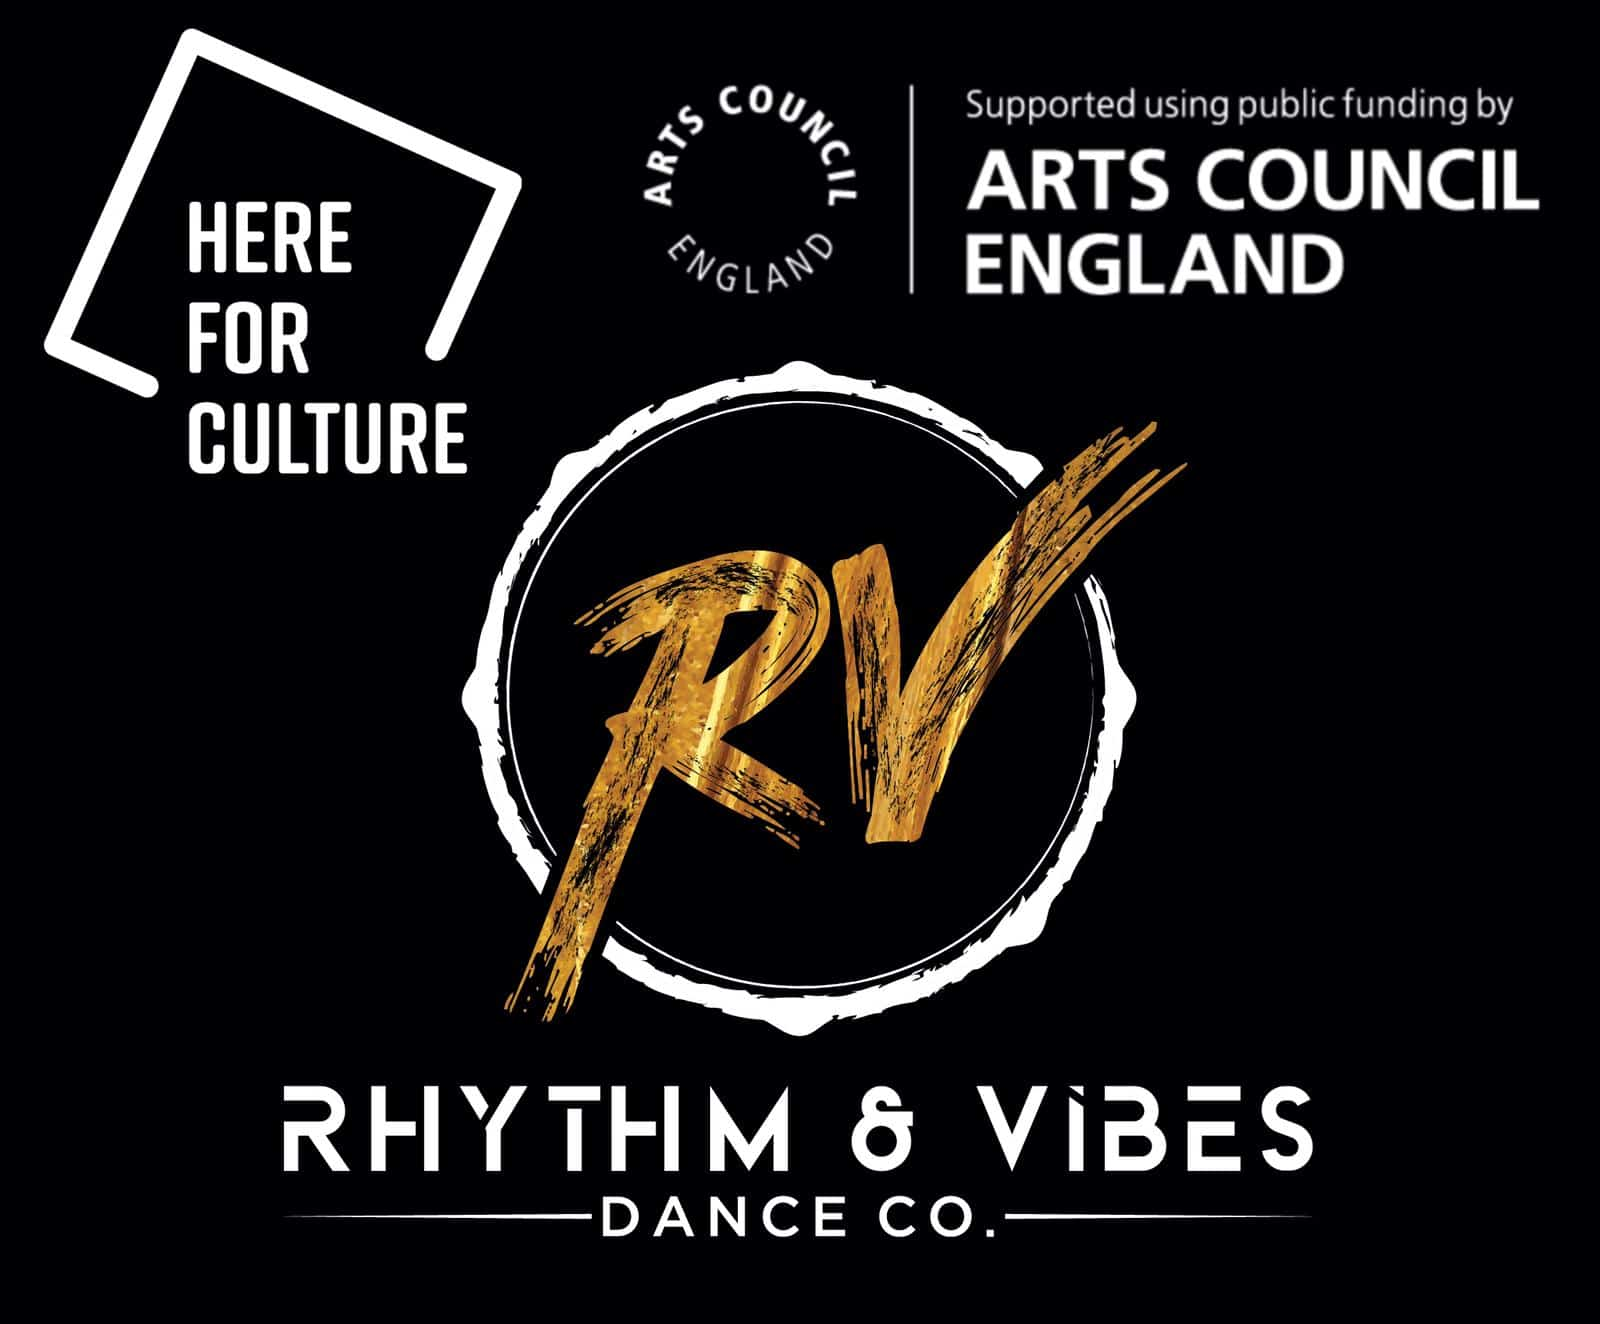 Arts Council England and Rhythm and Vibes Dance Company